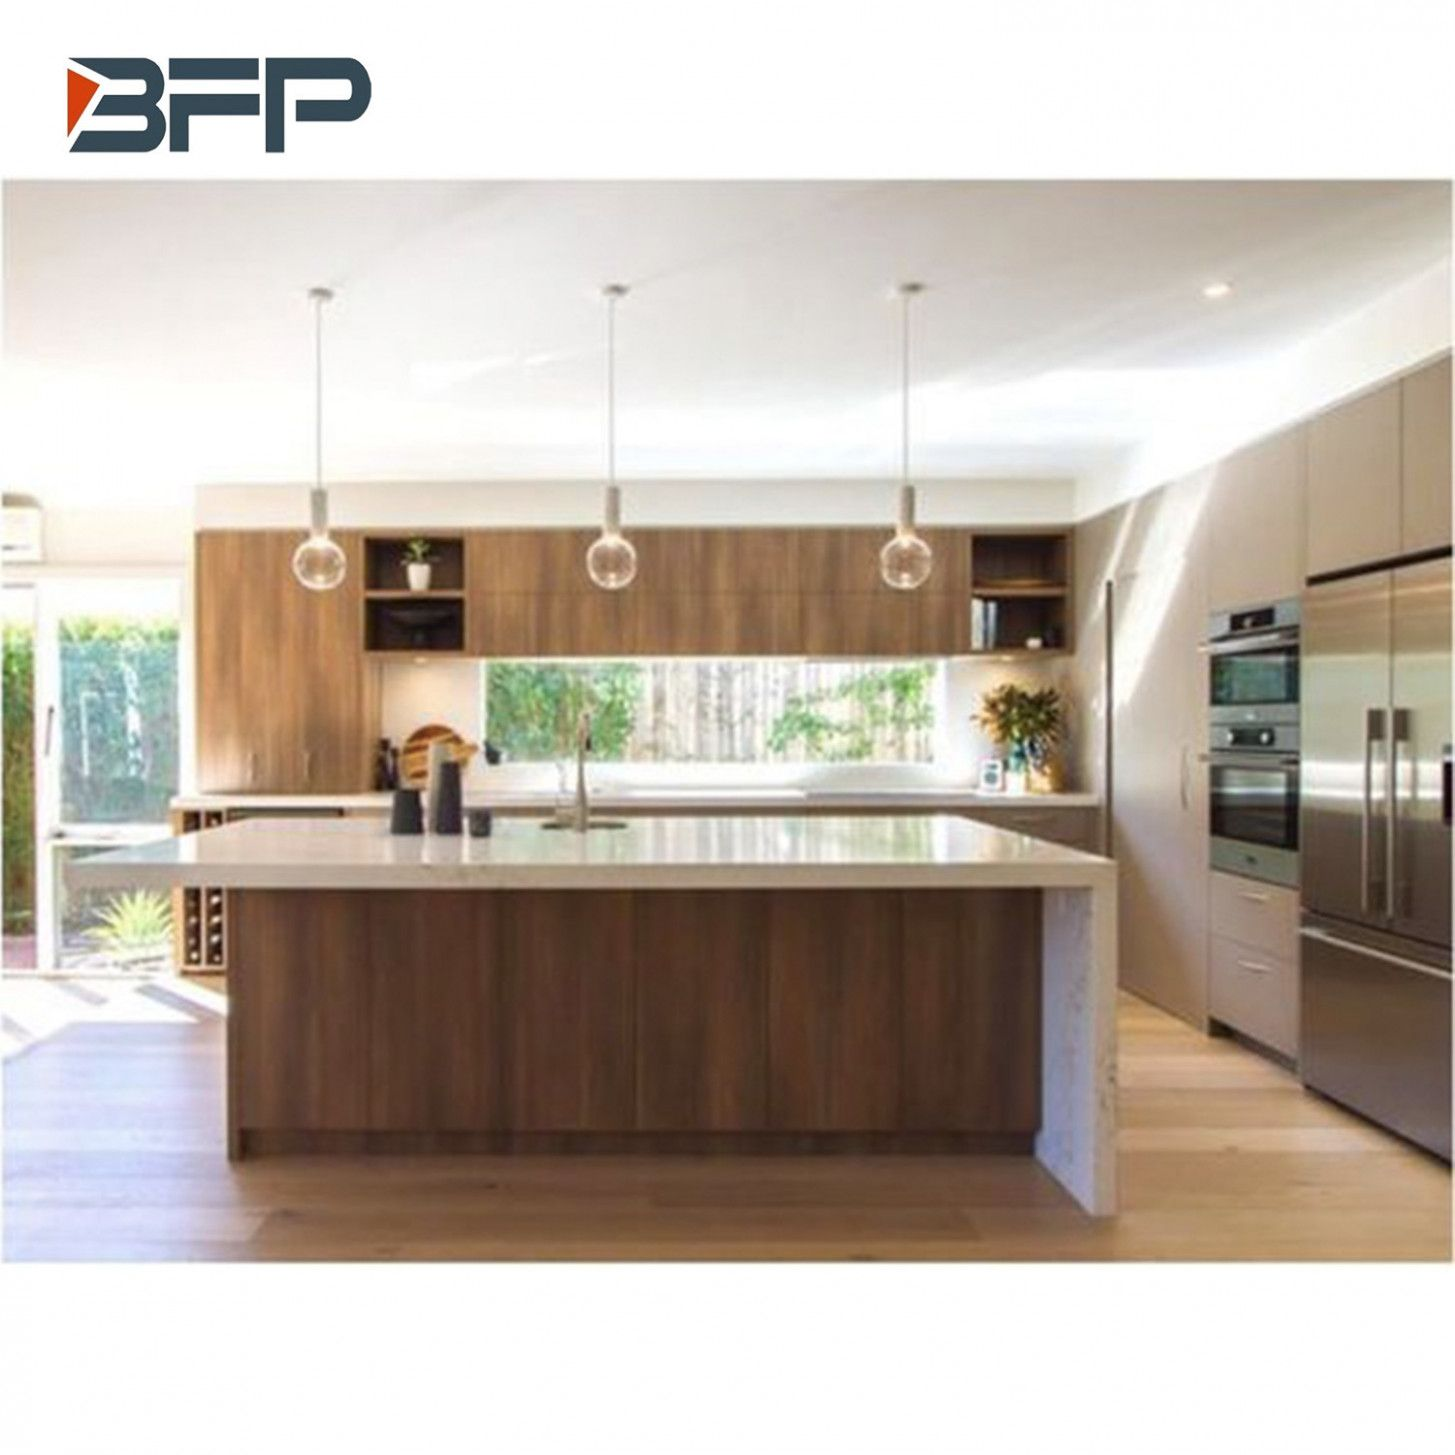 Five Thoughts You Have As Modern Wood Grain Kitchen Cabinets Approaches Laminate Kitchen Cabinets Kitchen Cabinet Design Wooden Kitchen Cabinets